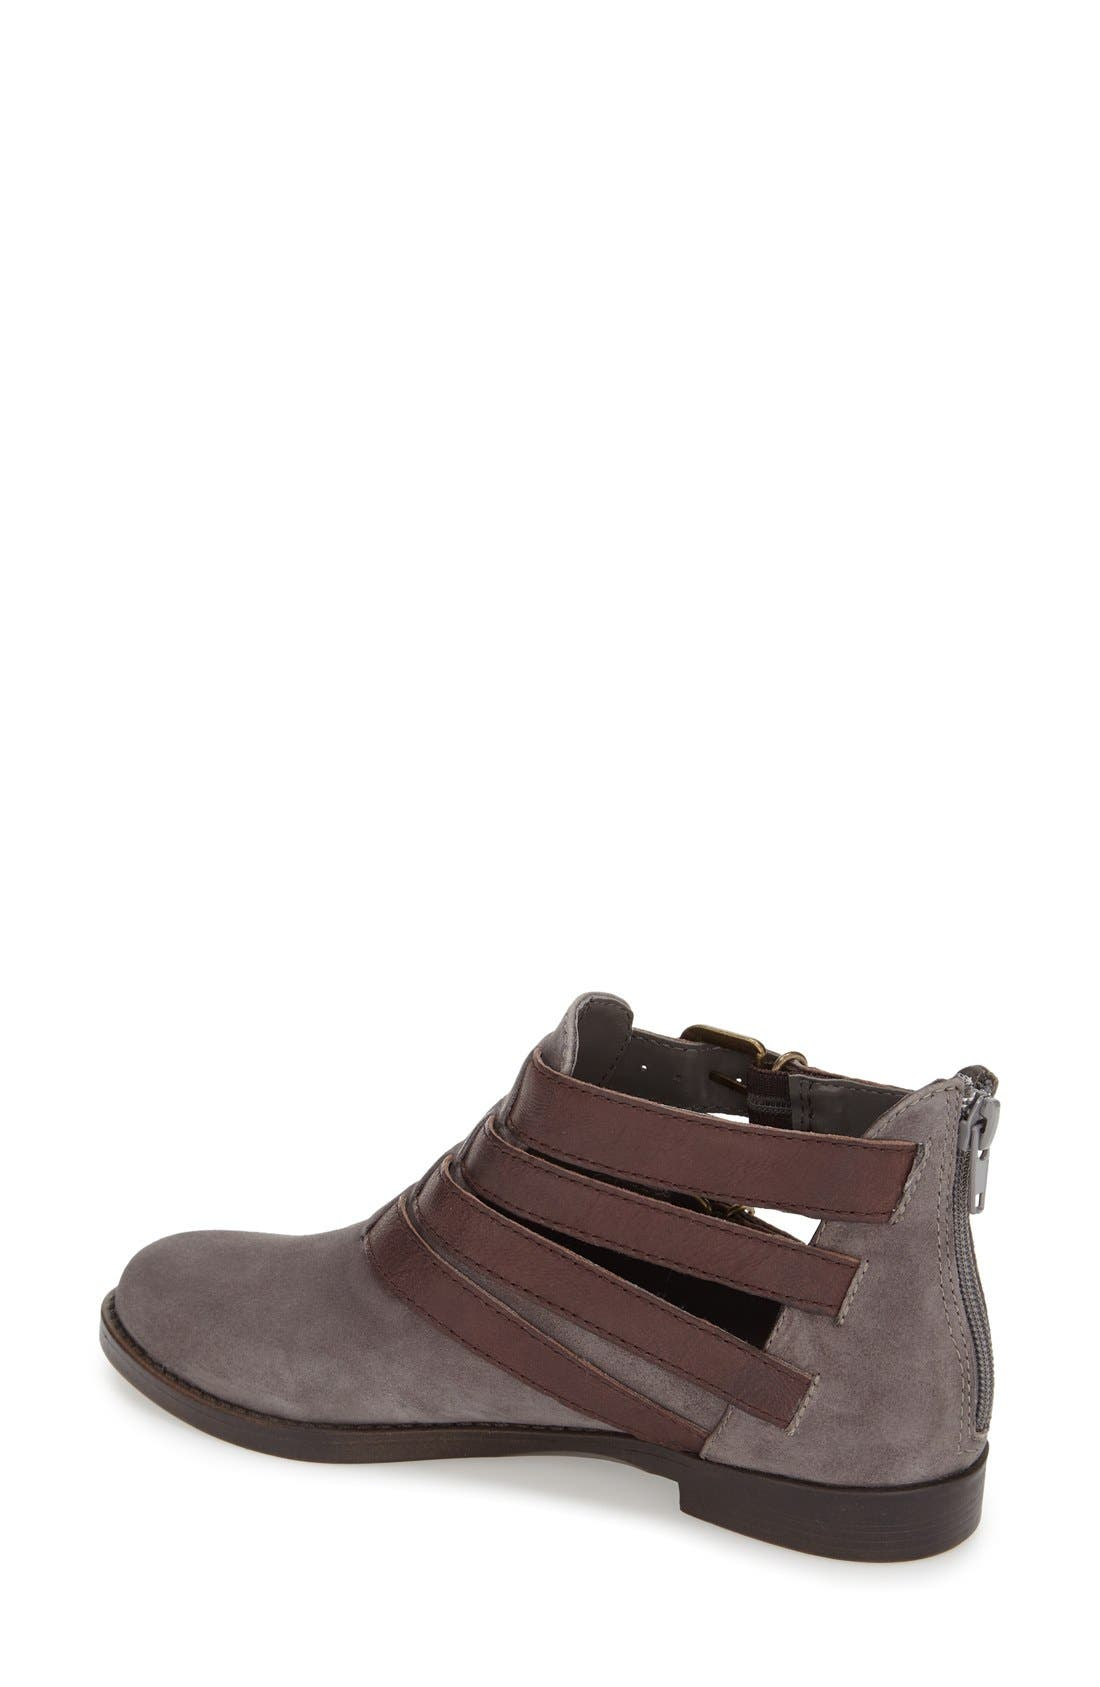 'Ronan' Buckle Leather Bootie,                             Alternate thumbnail 3, color,                             Grey Suede/ Chestnut